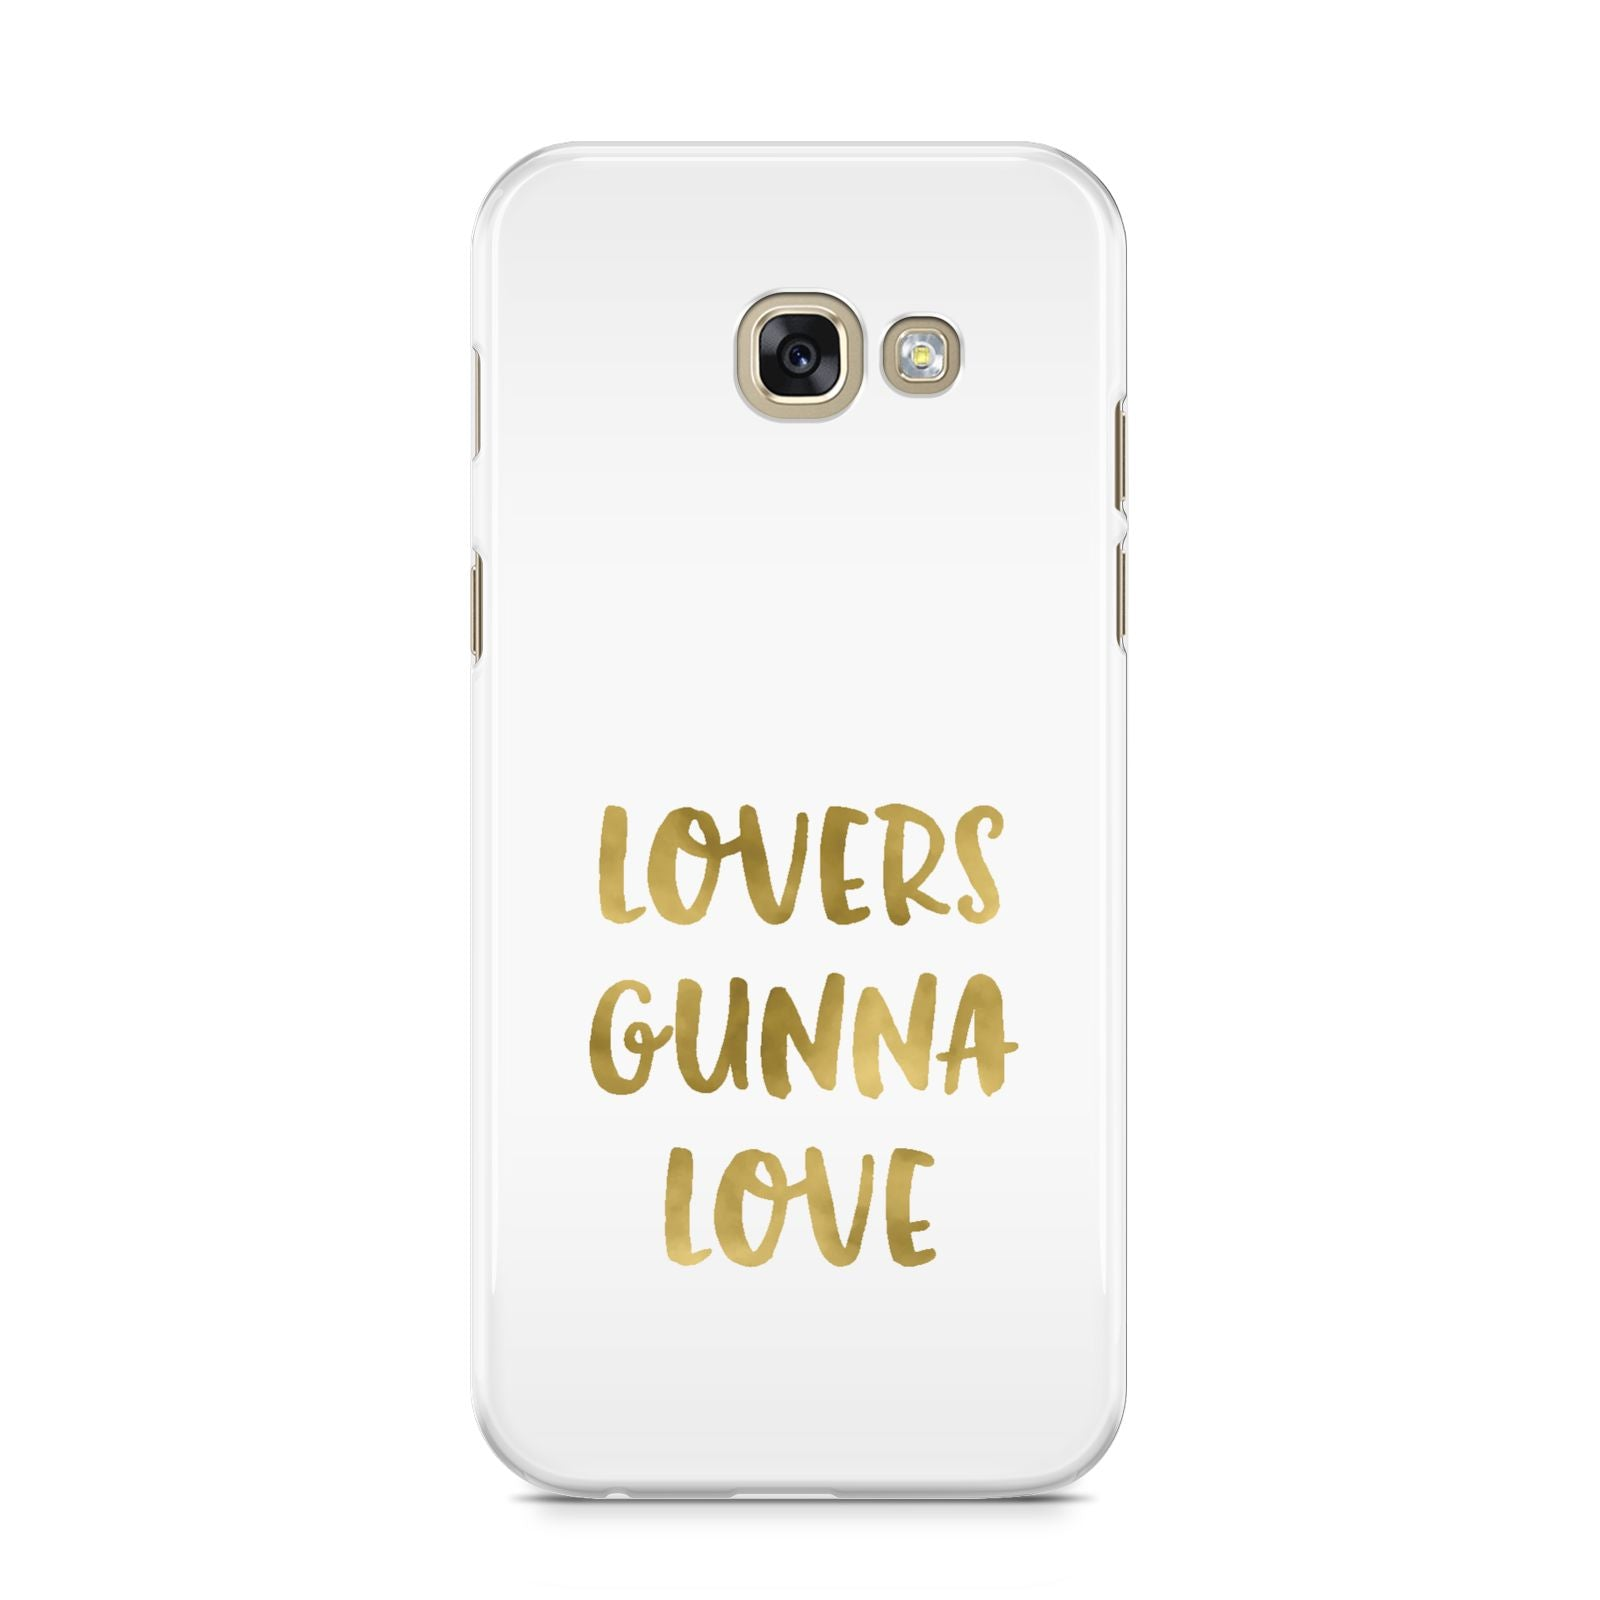 Lovers Gunna Love Real Gold Foil Samsung Galaxy A5 2017 Case on gold phone